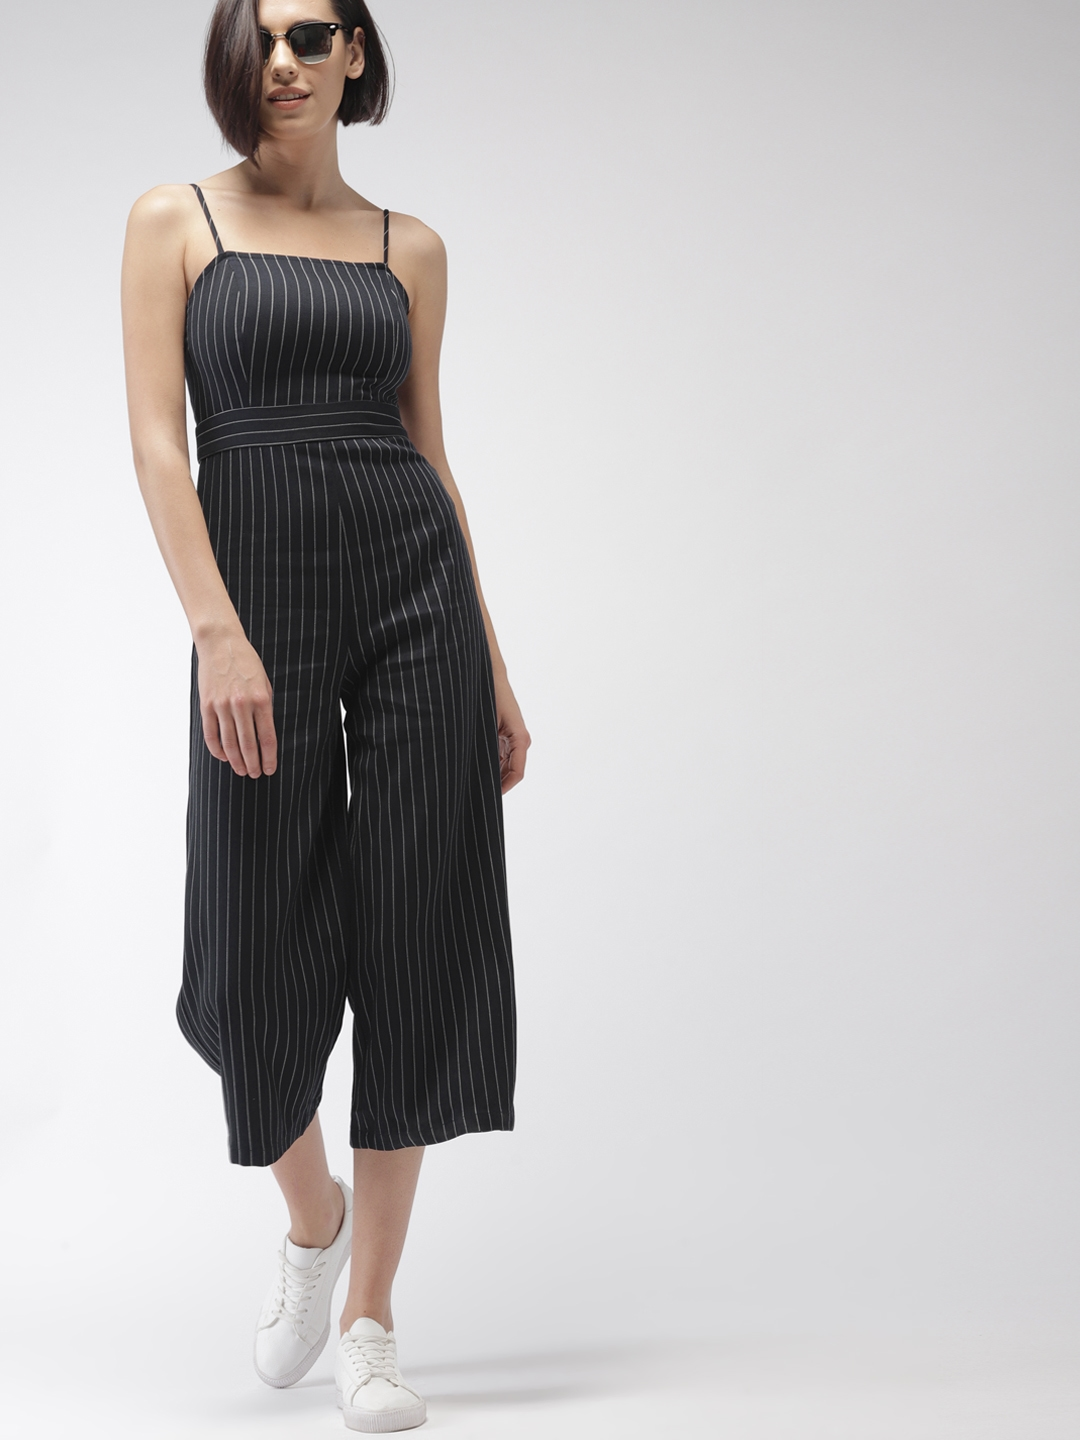 1d467c8072a Buy FOREVER 21 Navy Blue Striped Culotte Jumpsuit - Jumpsuit for ...